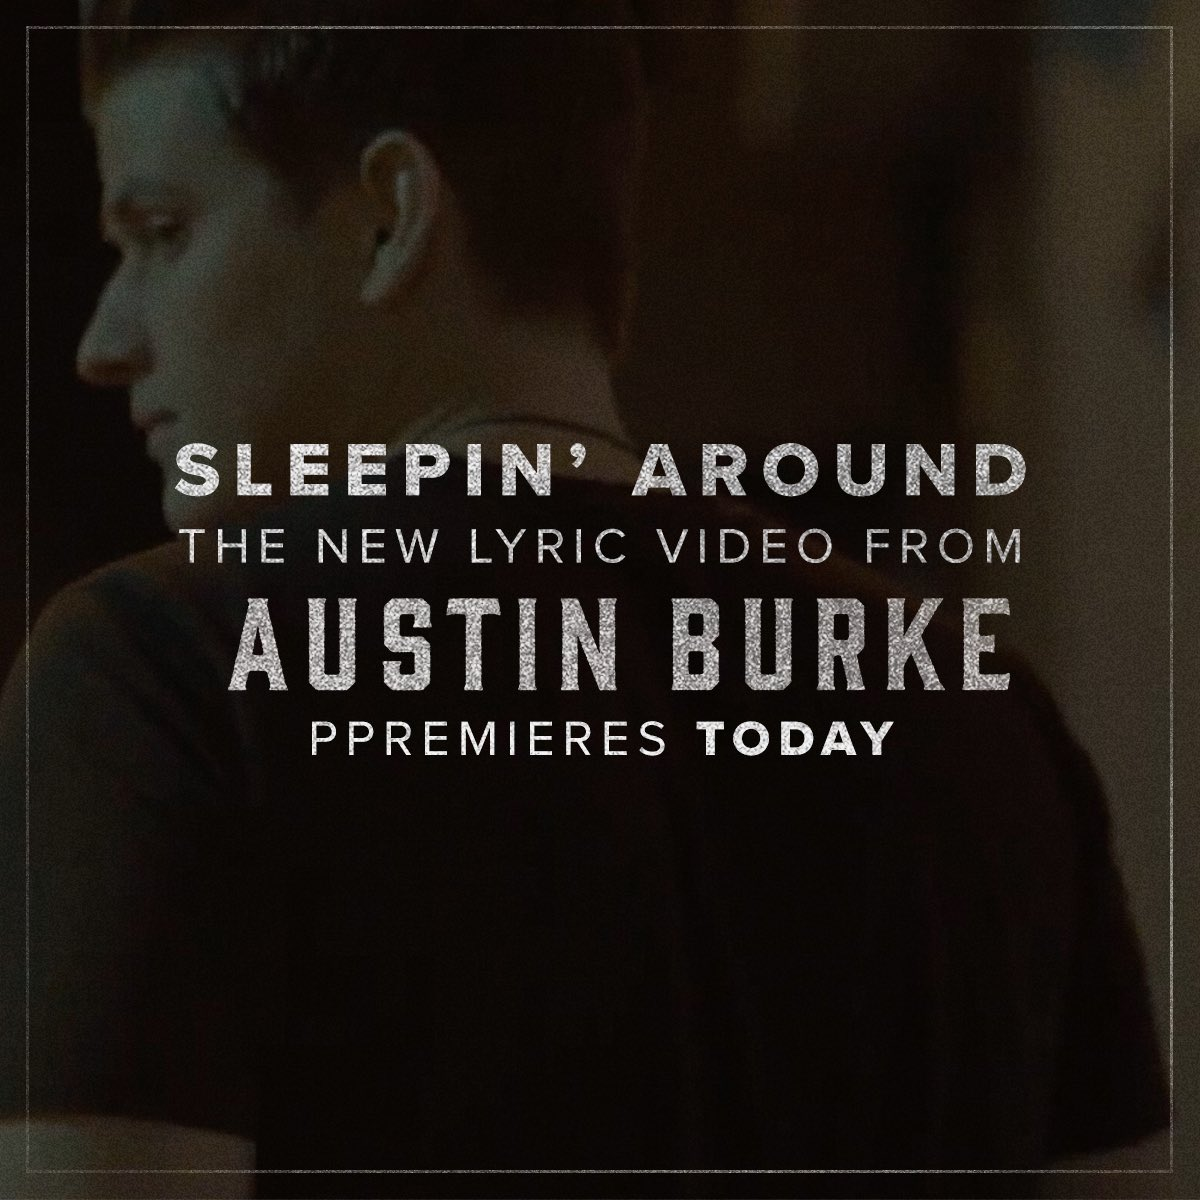 It&#39;s here! The new lyric video for #sleepinaround by @austinpburke is on @youtube &gt;  http:// bit.ly/2t0gejO  &nbsp;   #checkitout #share #teamGLE<br>http://pic.twitter.com/snKXyp2rop